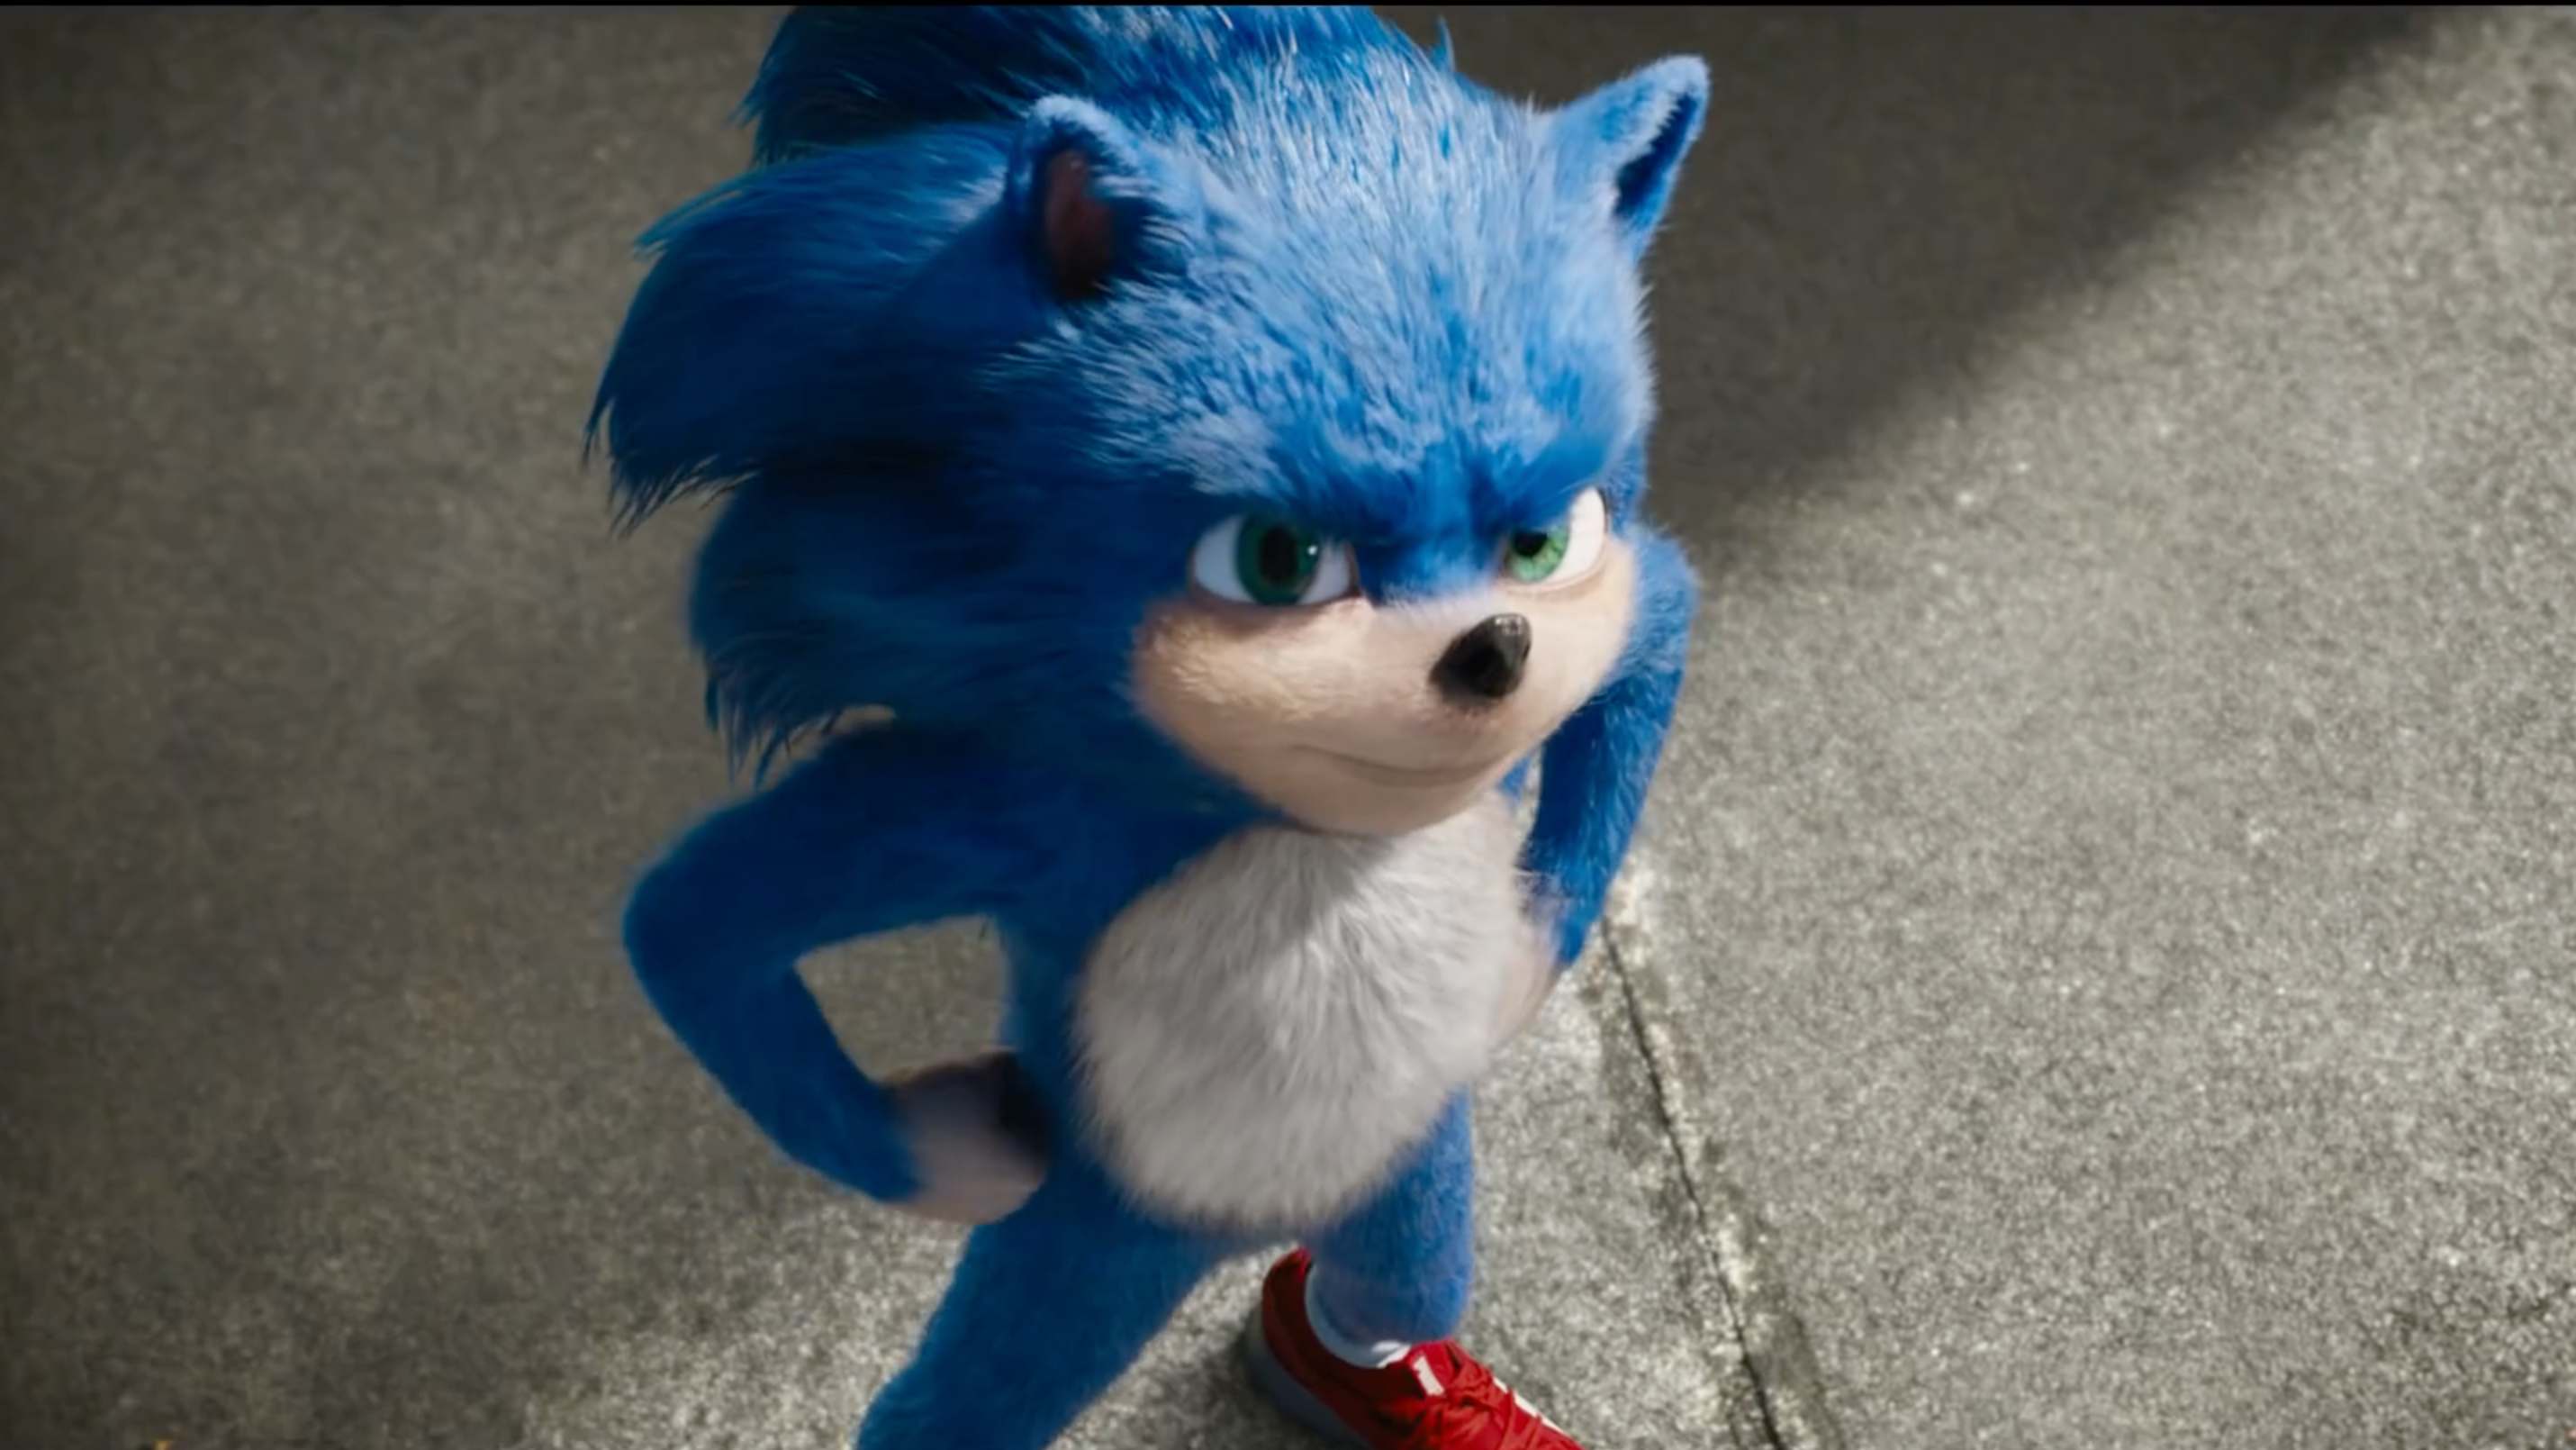 Sonic The Hedgehog Movie Delayed To 2020 To Fix Sonic's Look